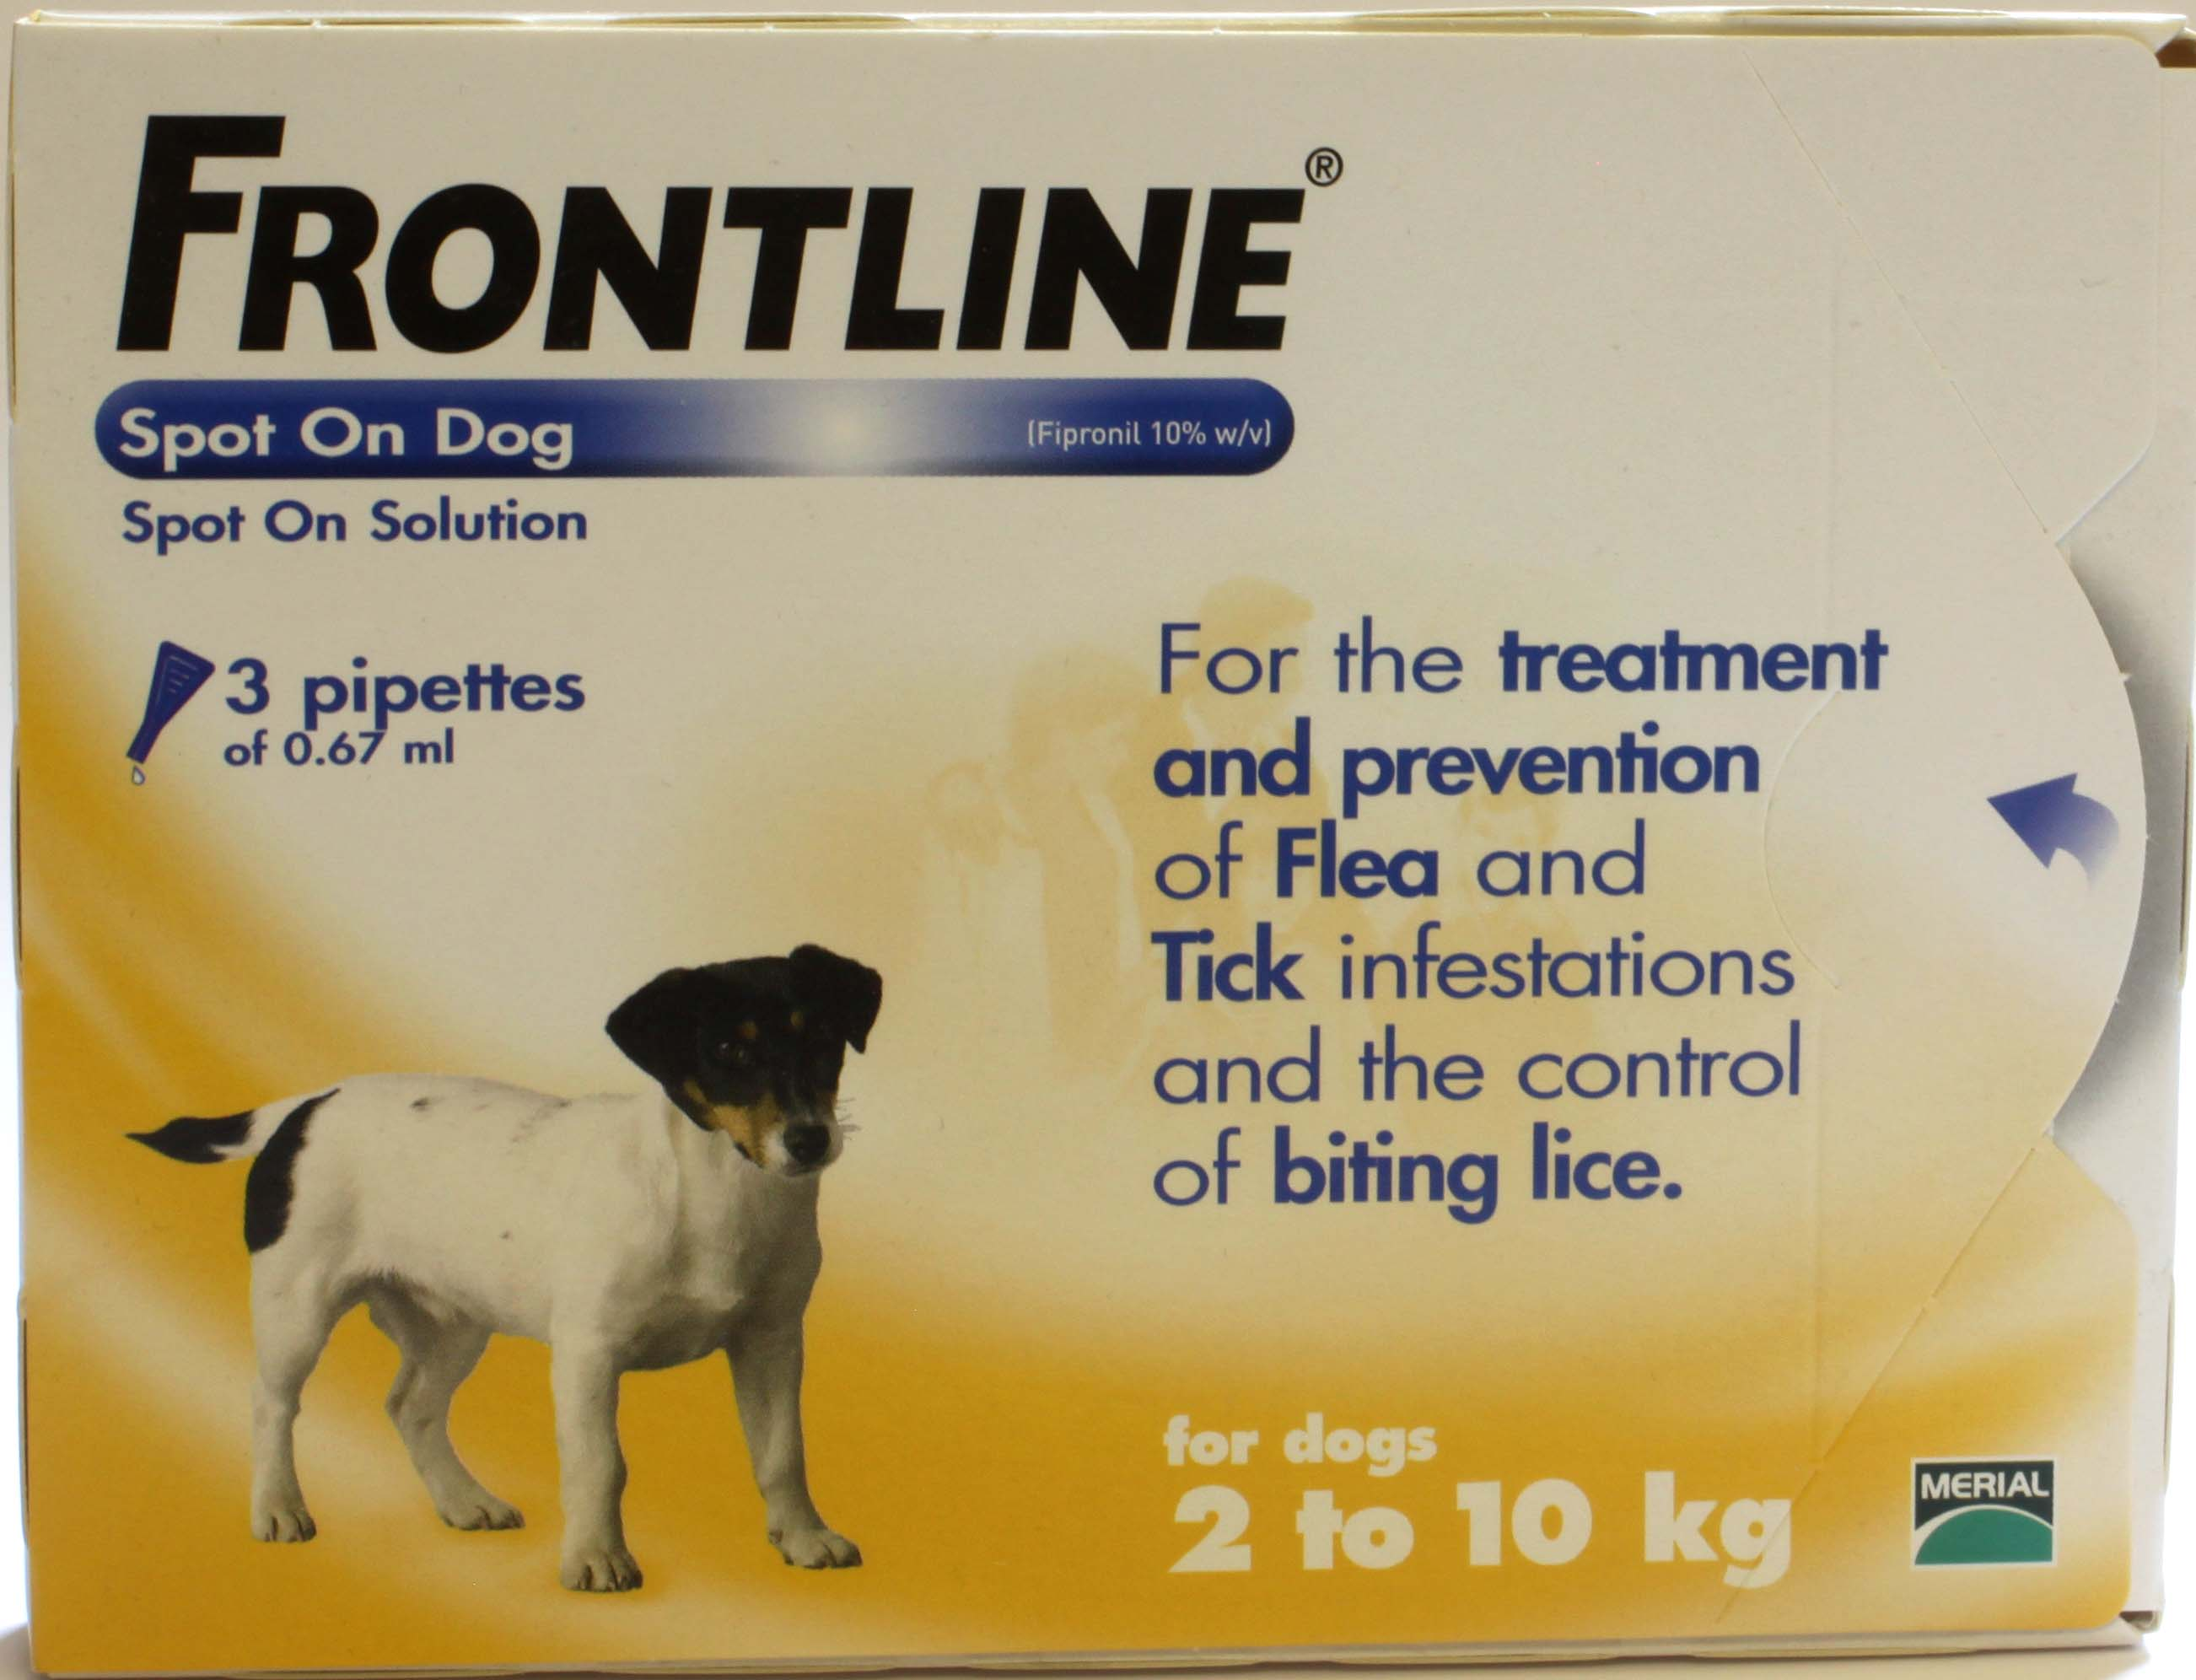 Frontline Spot On Dog Small Dog - 3 Pipettes of 0.67ml